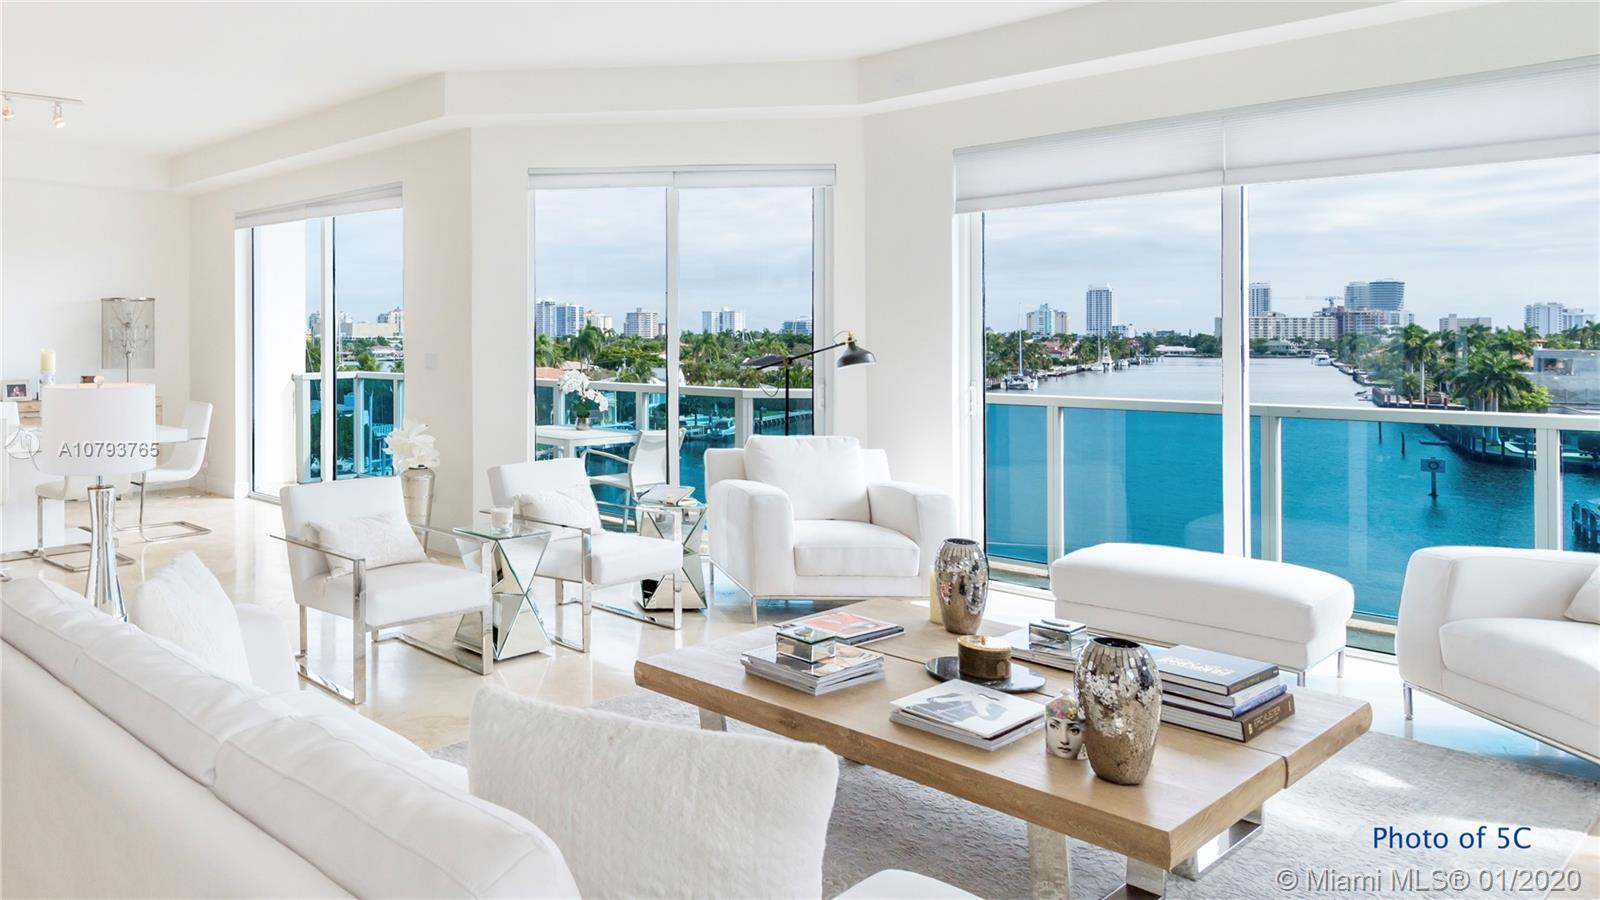 You Opportunity to Own The Best View on the Las Olas Isles in this Spacious 2 Bedroom Encompassing t